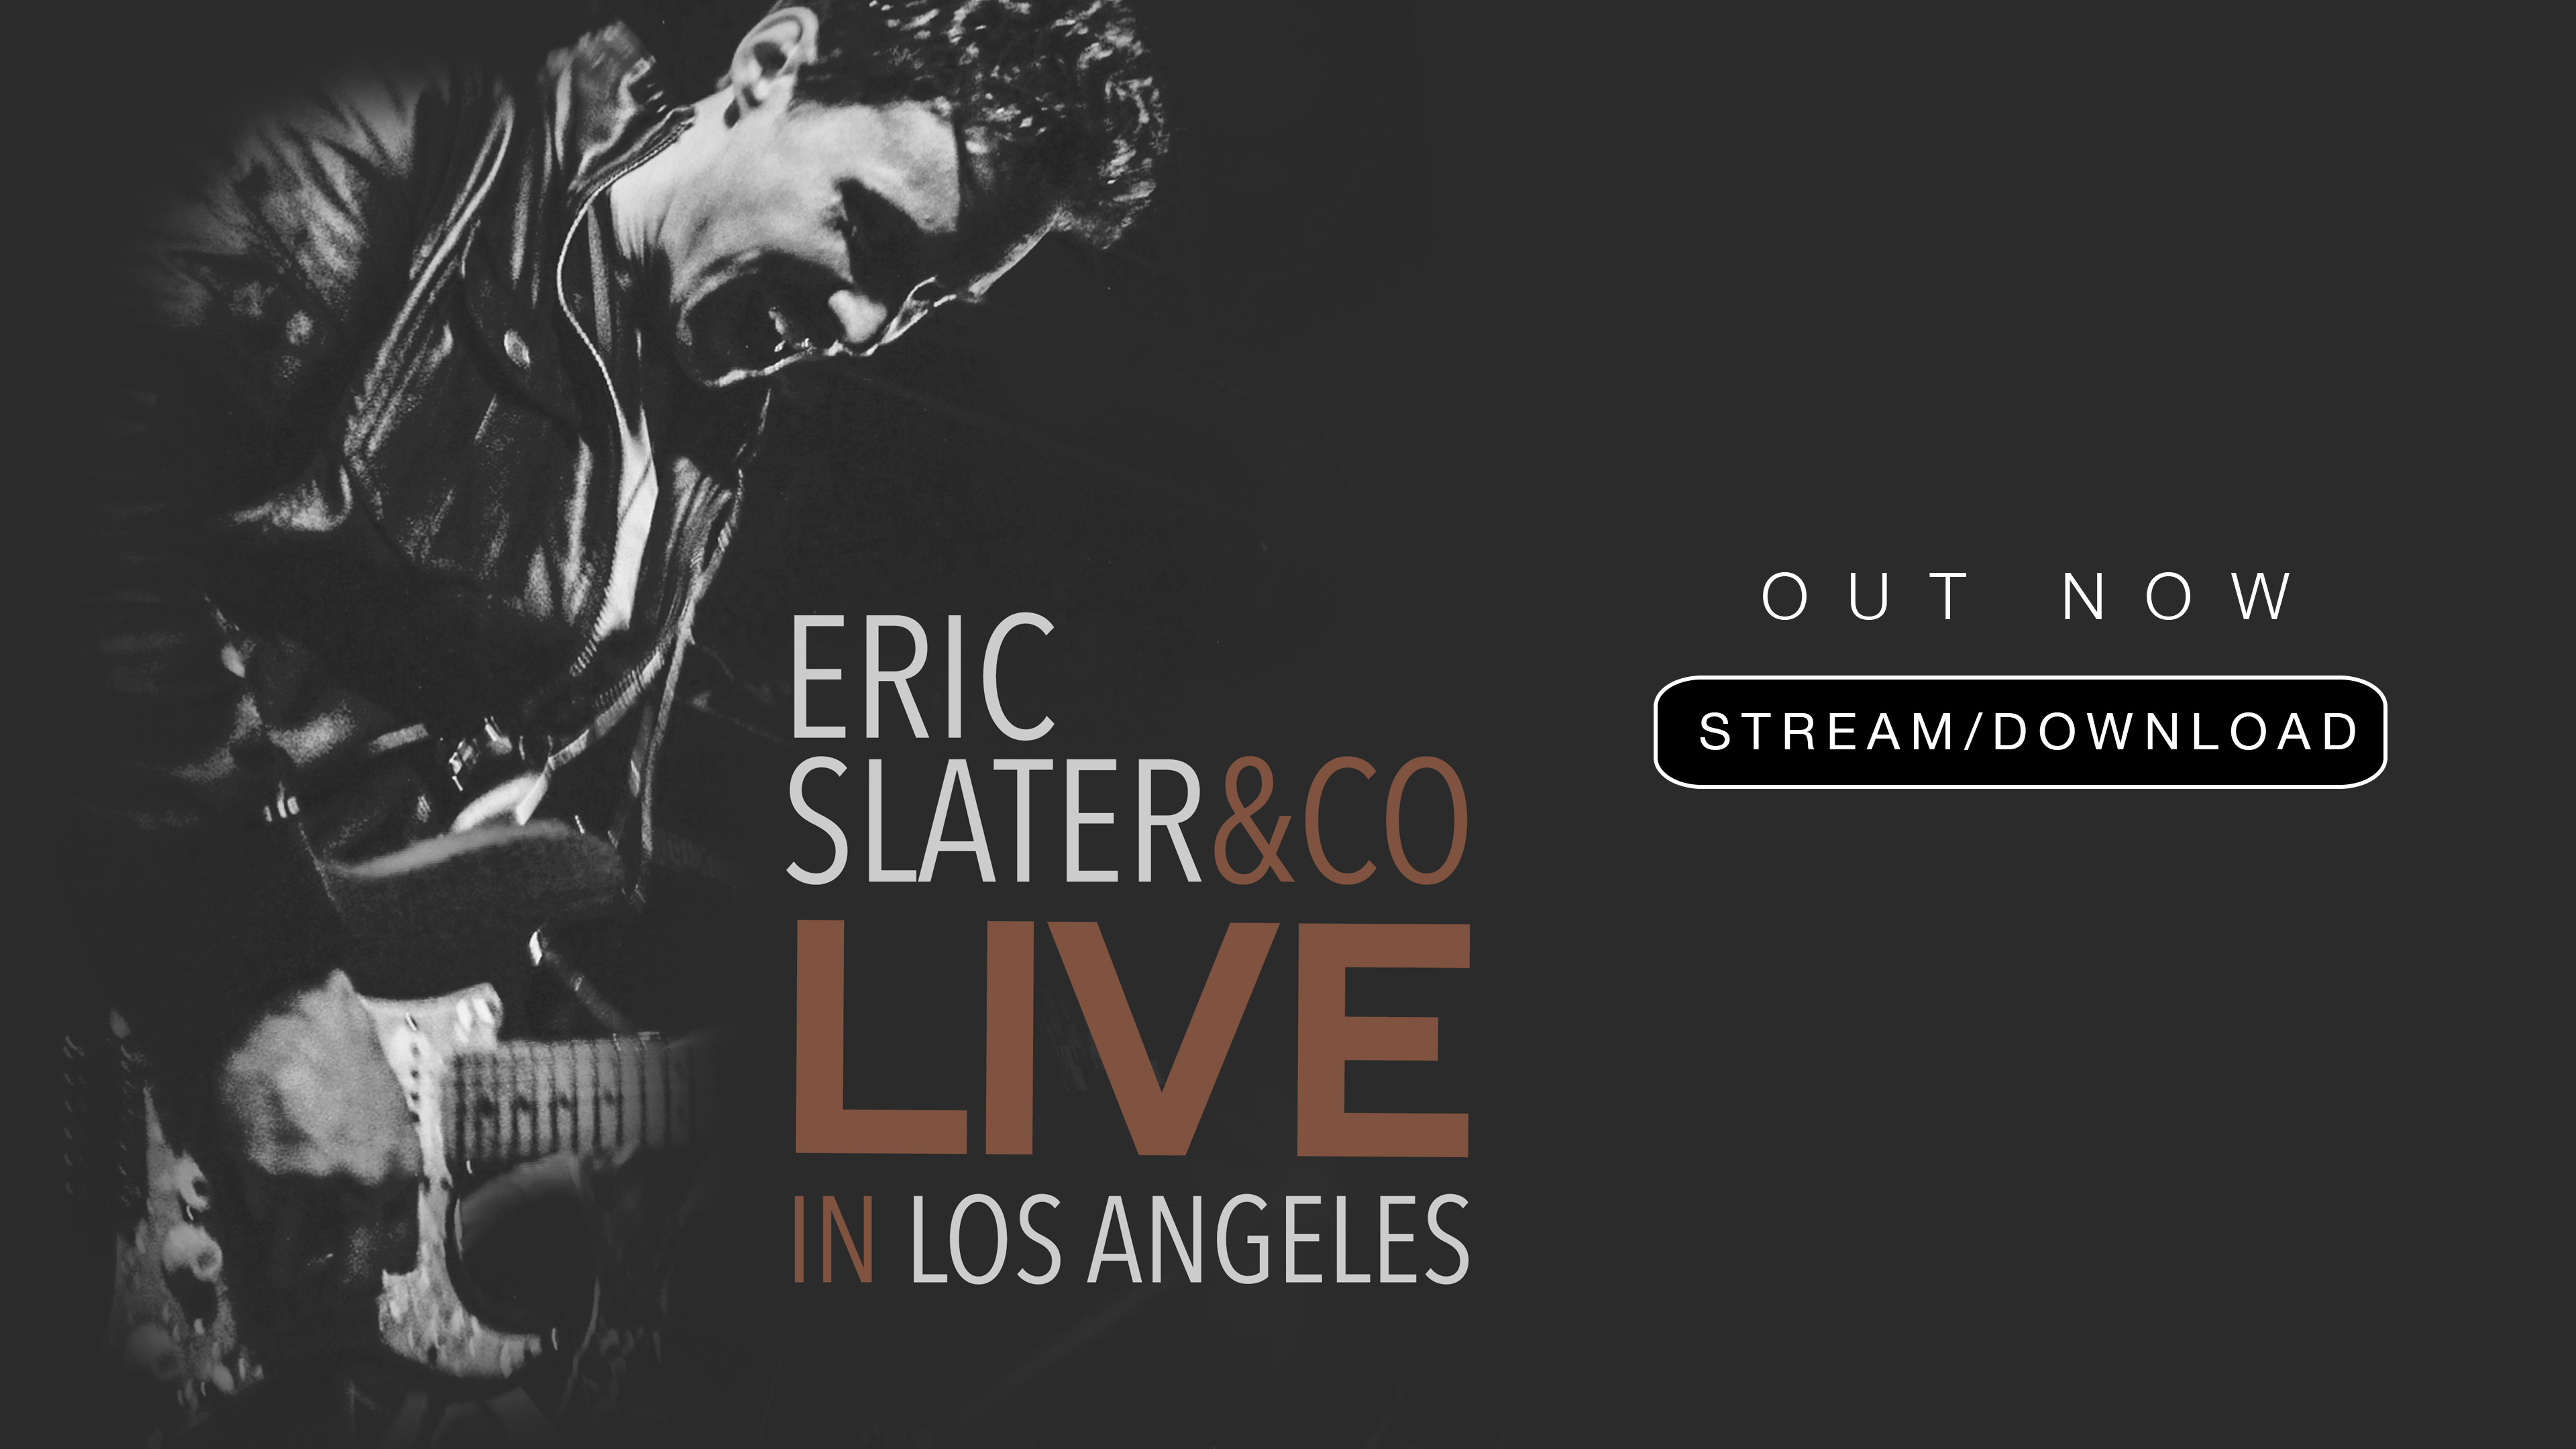 Eric Slater & Co - Live in Los Angeles